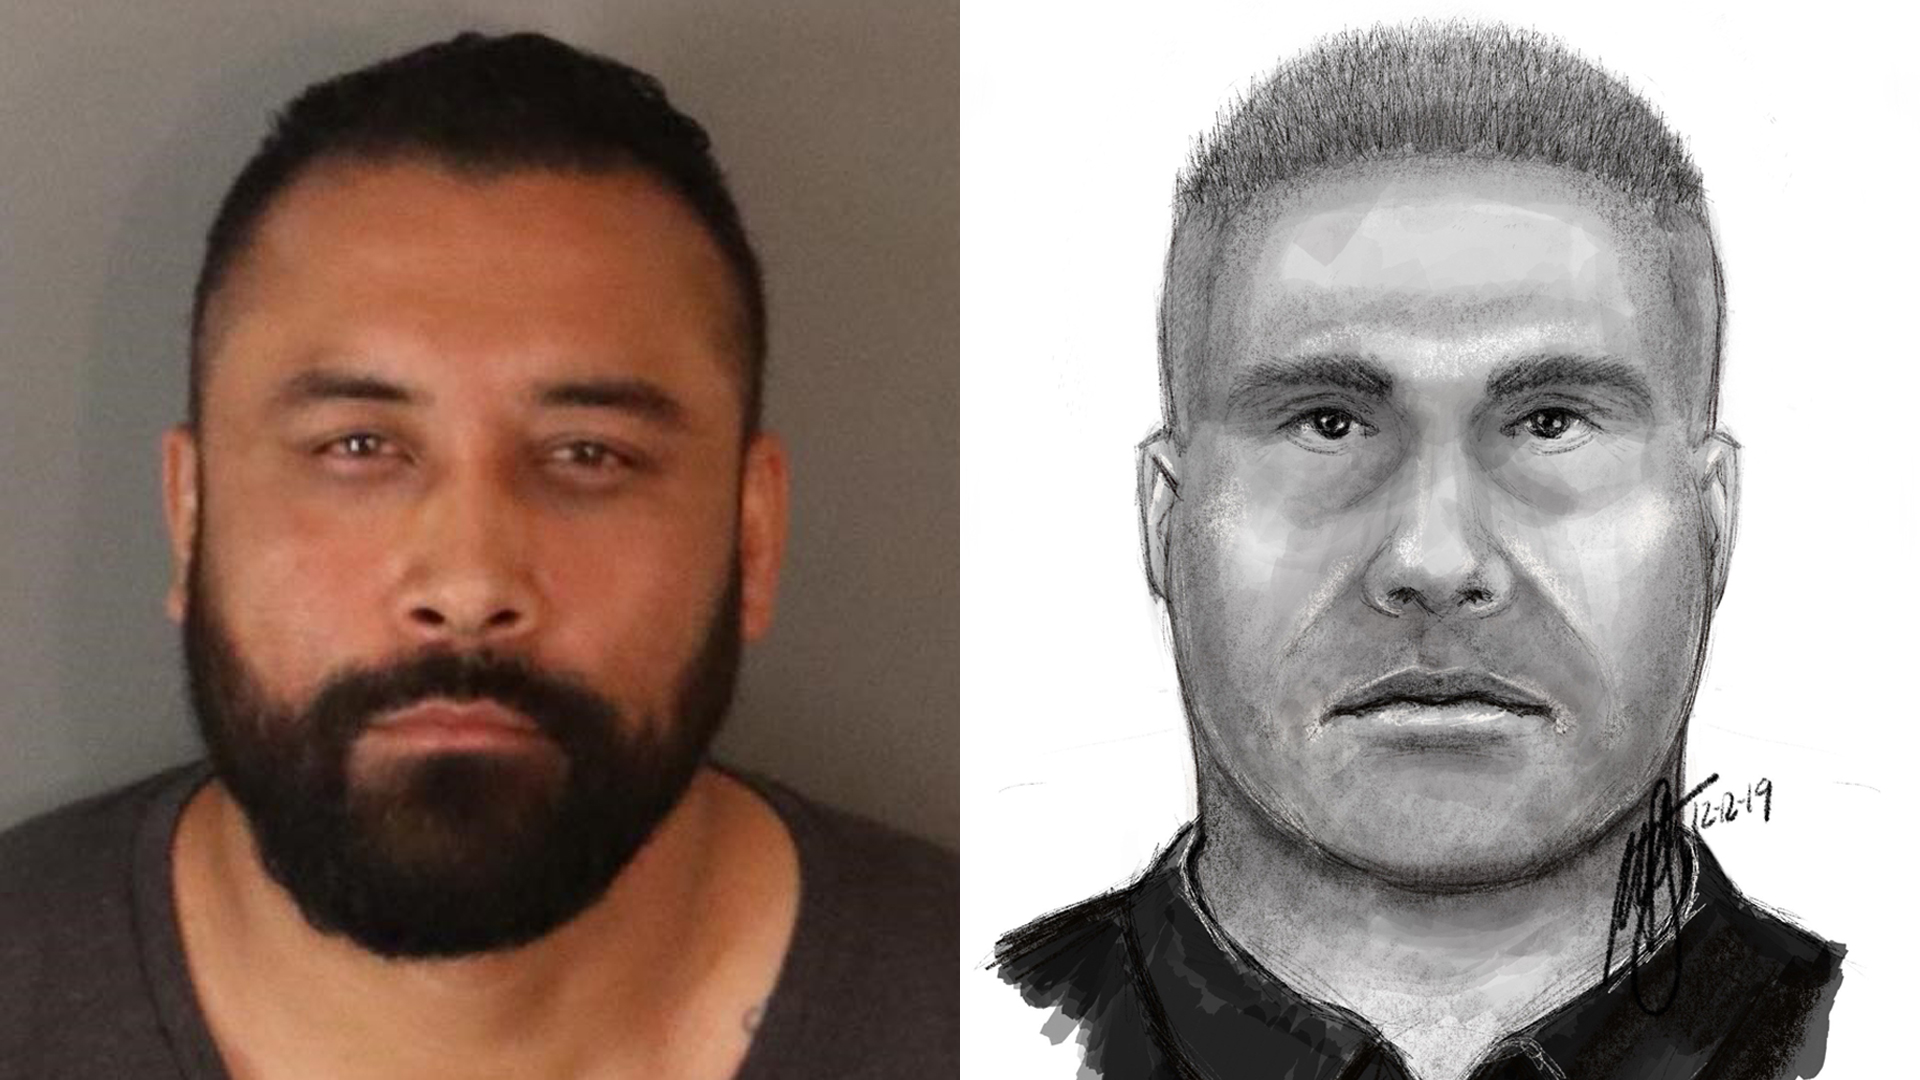 At left, Jose Ivan Rodriguez is seen in a booking photo released March 12, 2020, by the Riverside Police Department. At right, a composite sketch the department released on Dec. 12, 2019, shows a man wanted in a sexual assault.